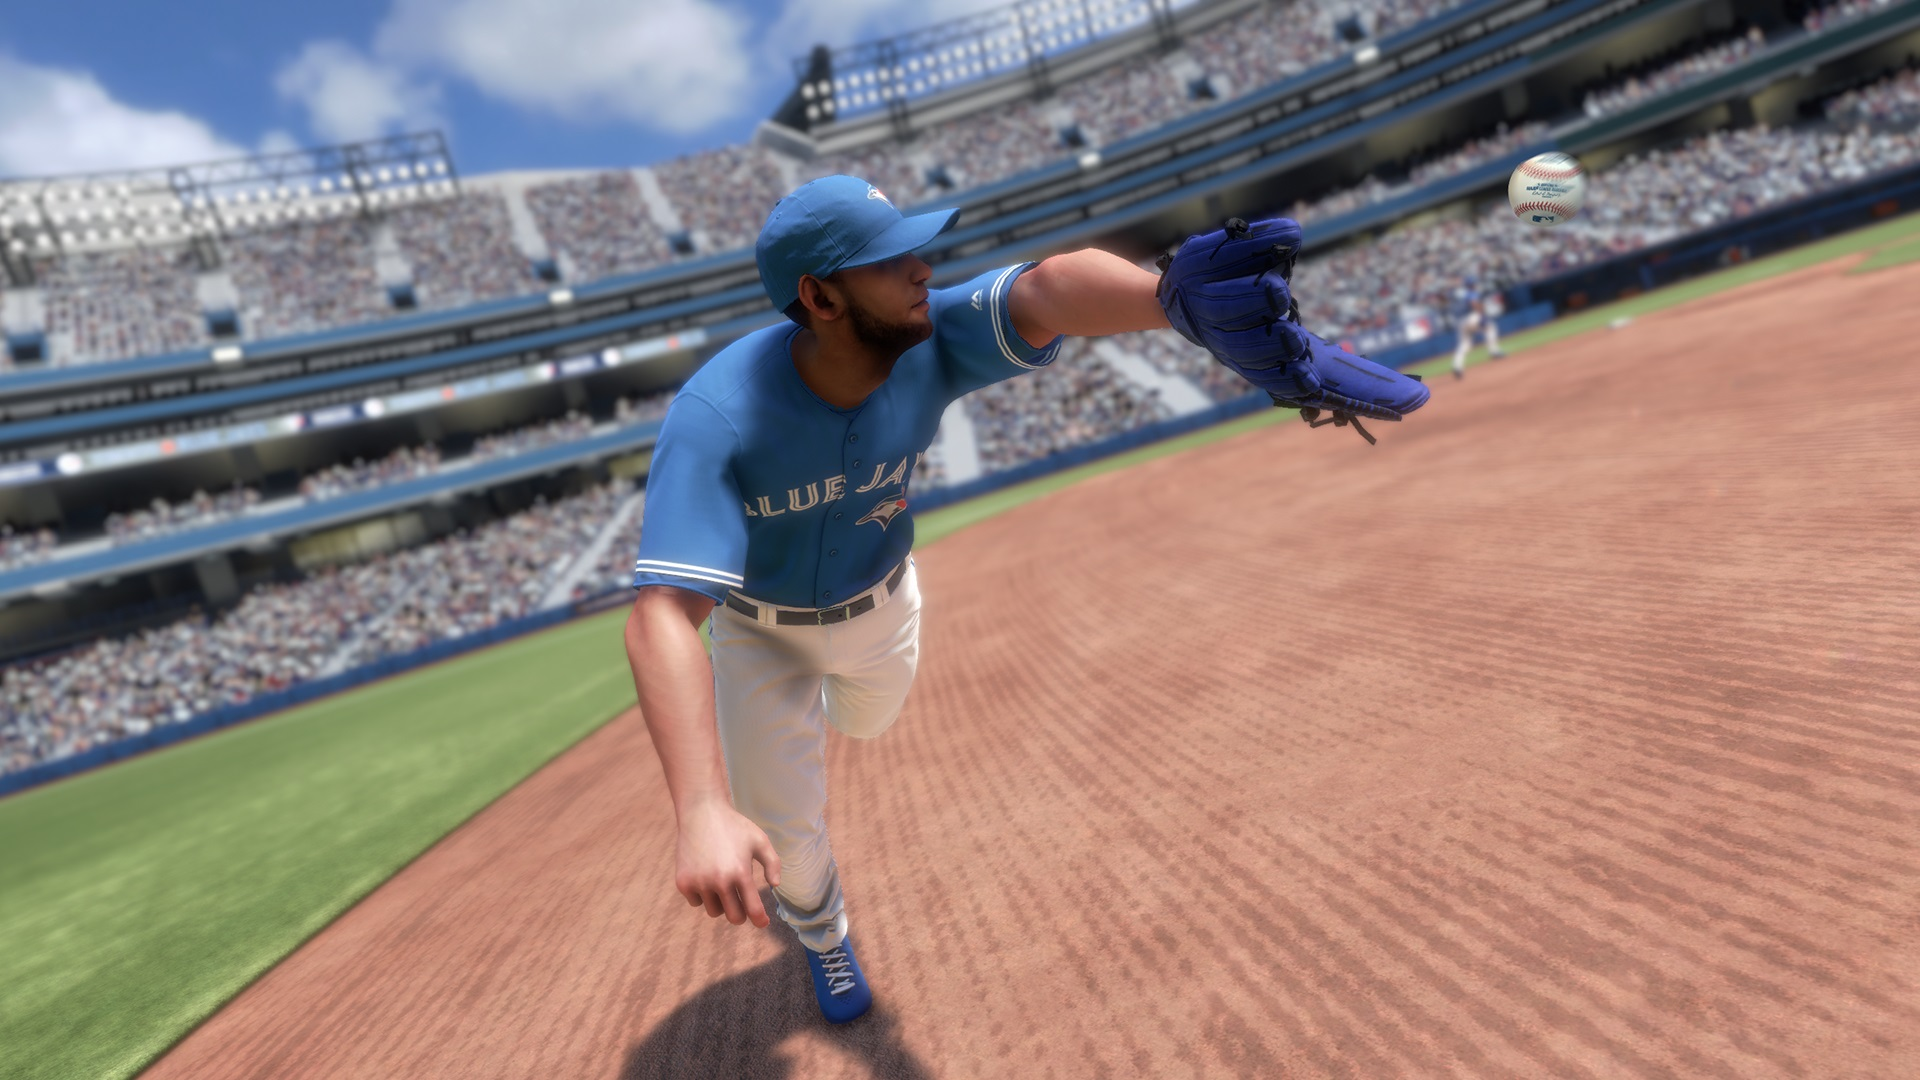 R.B.I. Baseball 19 Coming To Switch In March